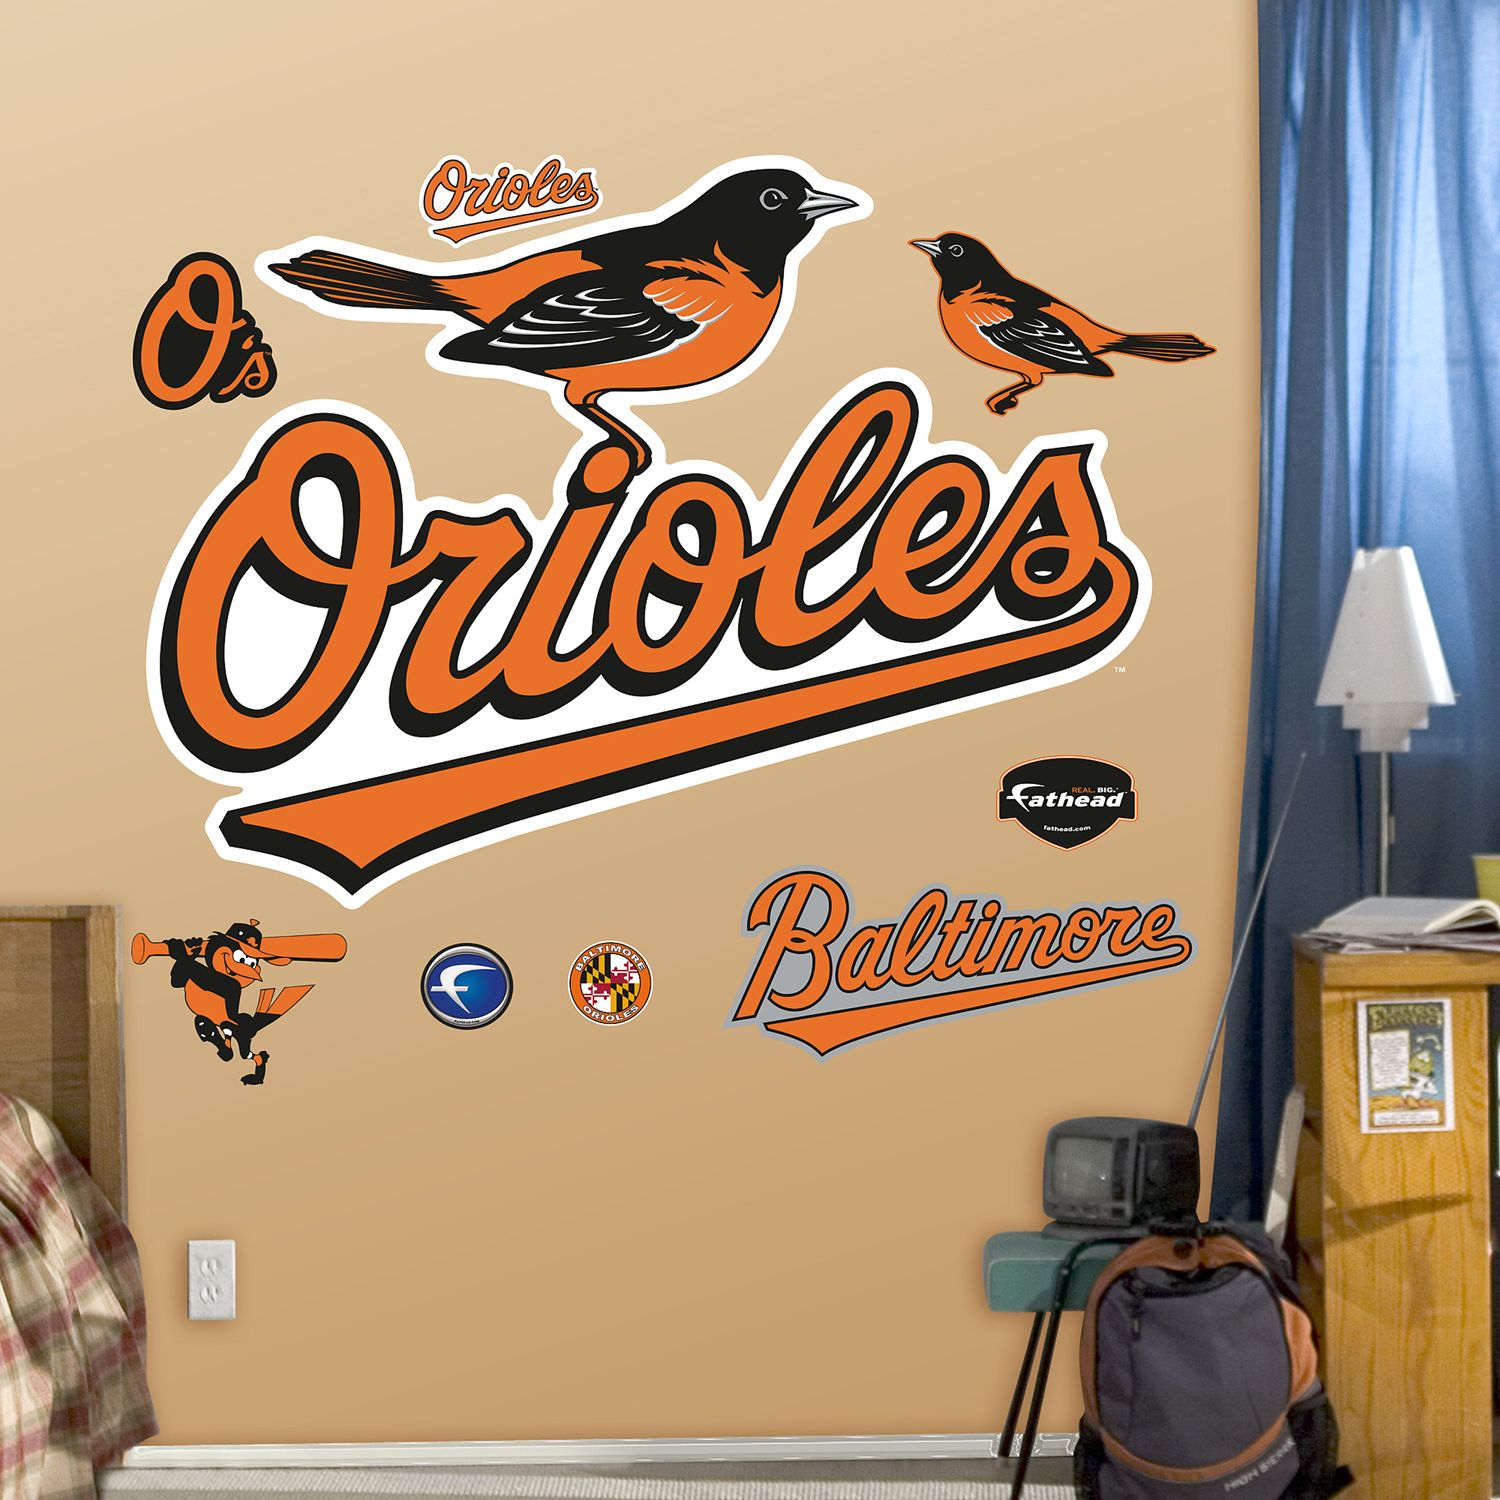 photo relating to Orioles Printable Schedule named Orioles promo code : 2018 Discount coupons